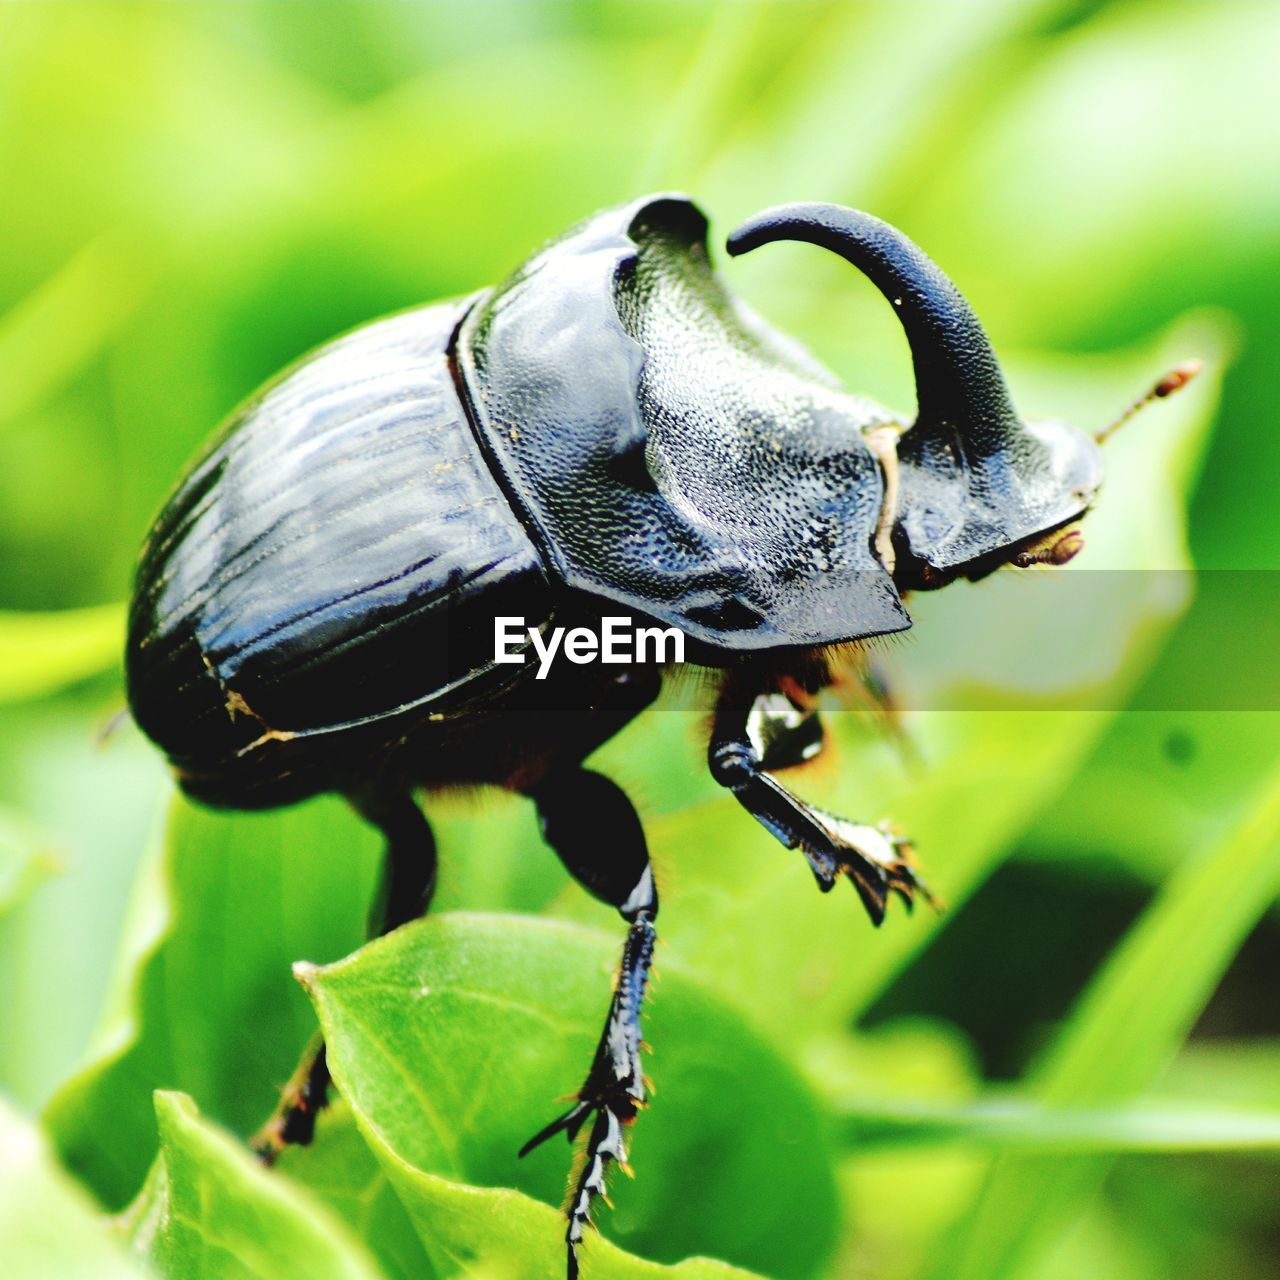 animal themes, animal, one animal, animals in the wild, animal wildlife, close-up, insect, plant part, invertebrate, leaf, focus on foreground, plant, green color, nature, no people, beetle, day, black color, beauty in nature, outdoors